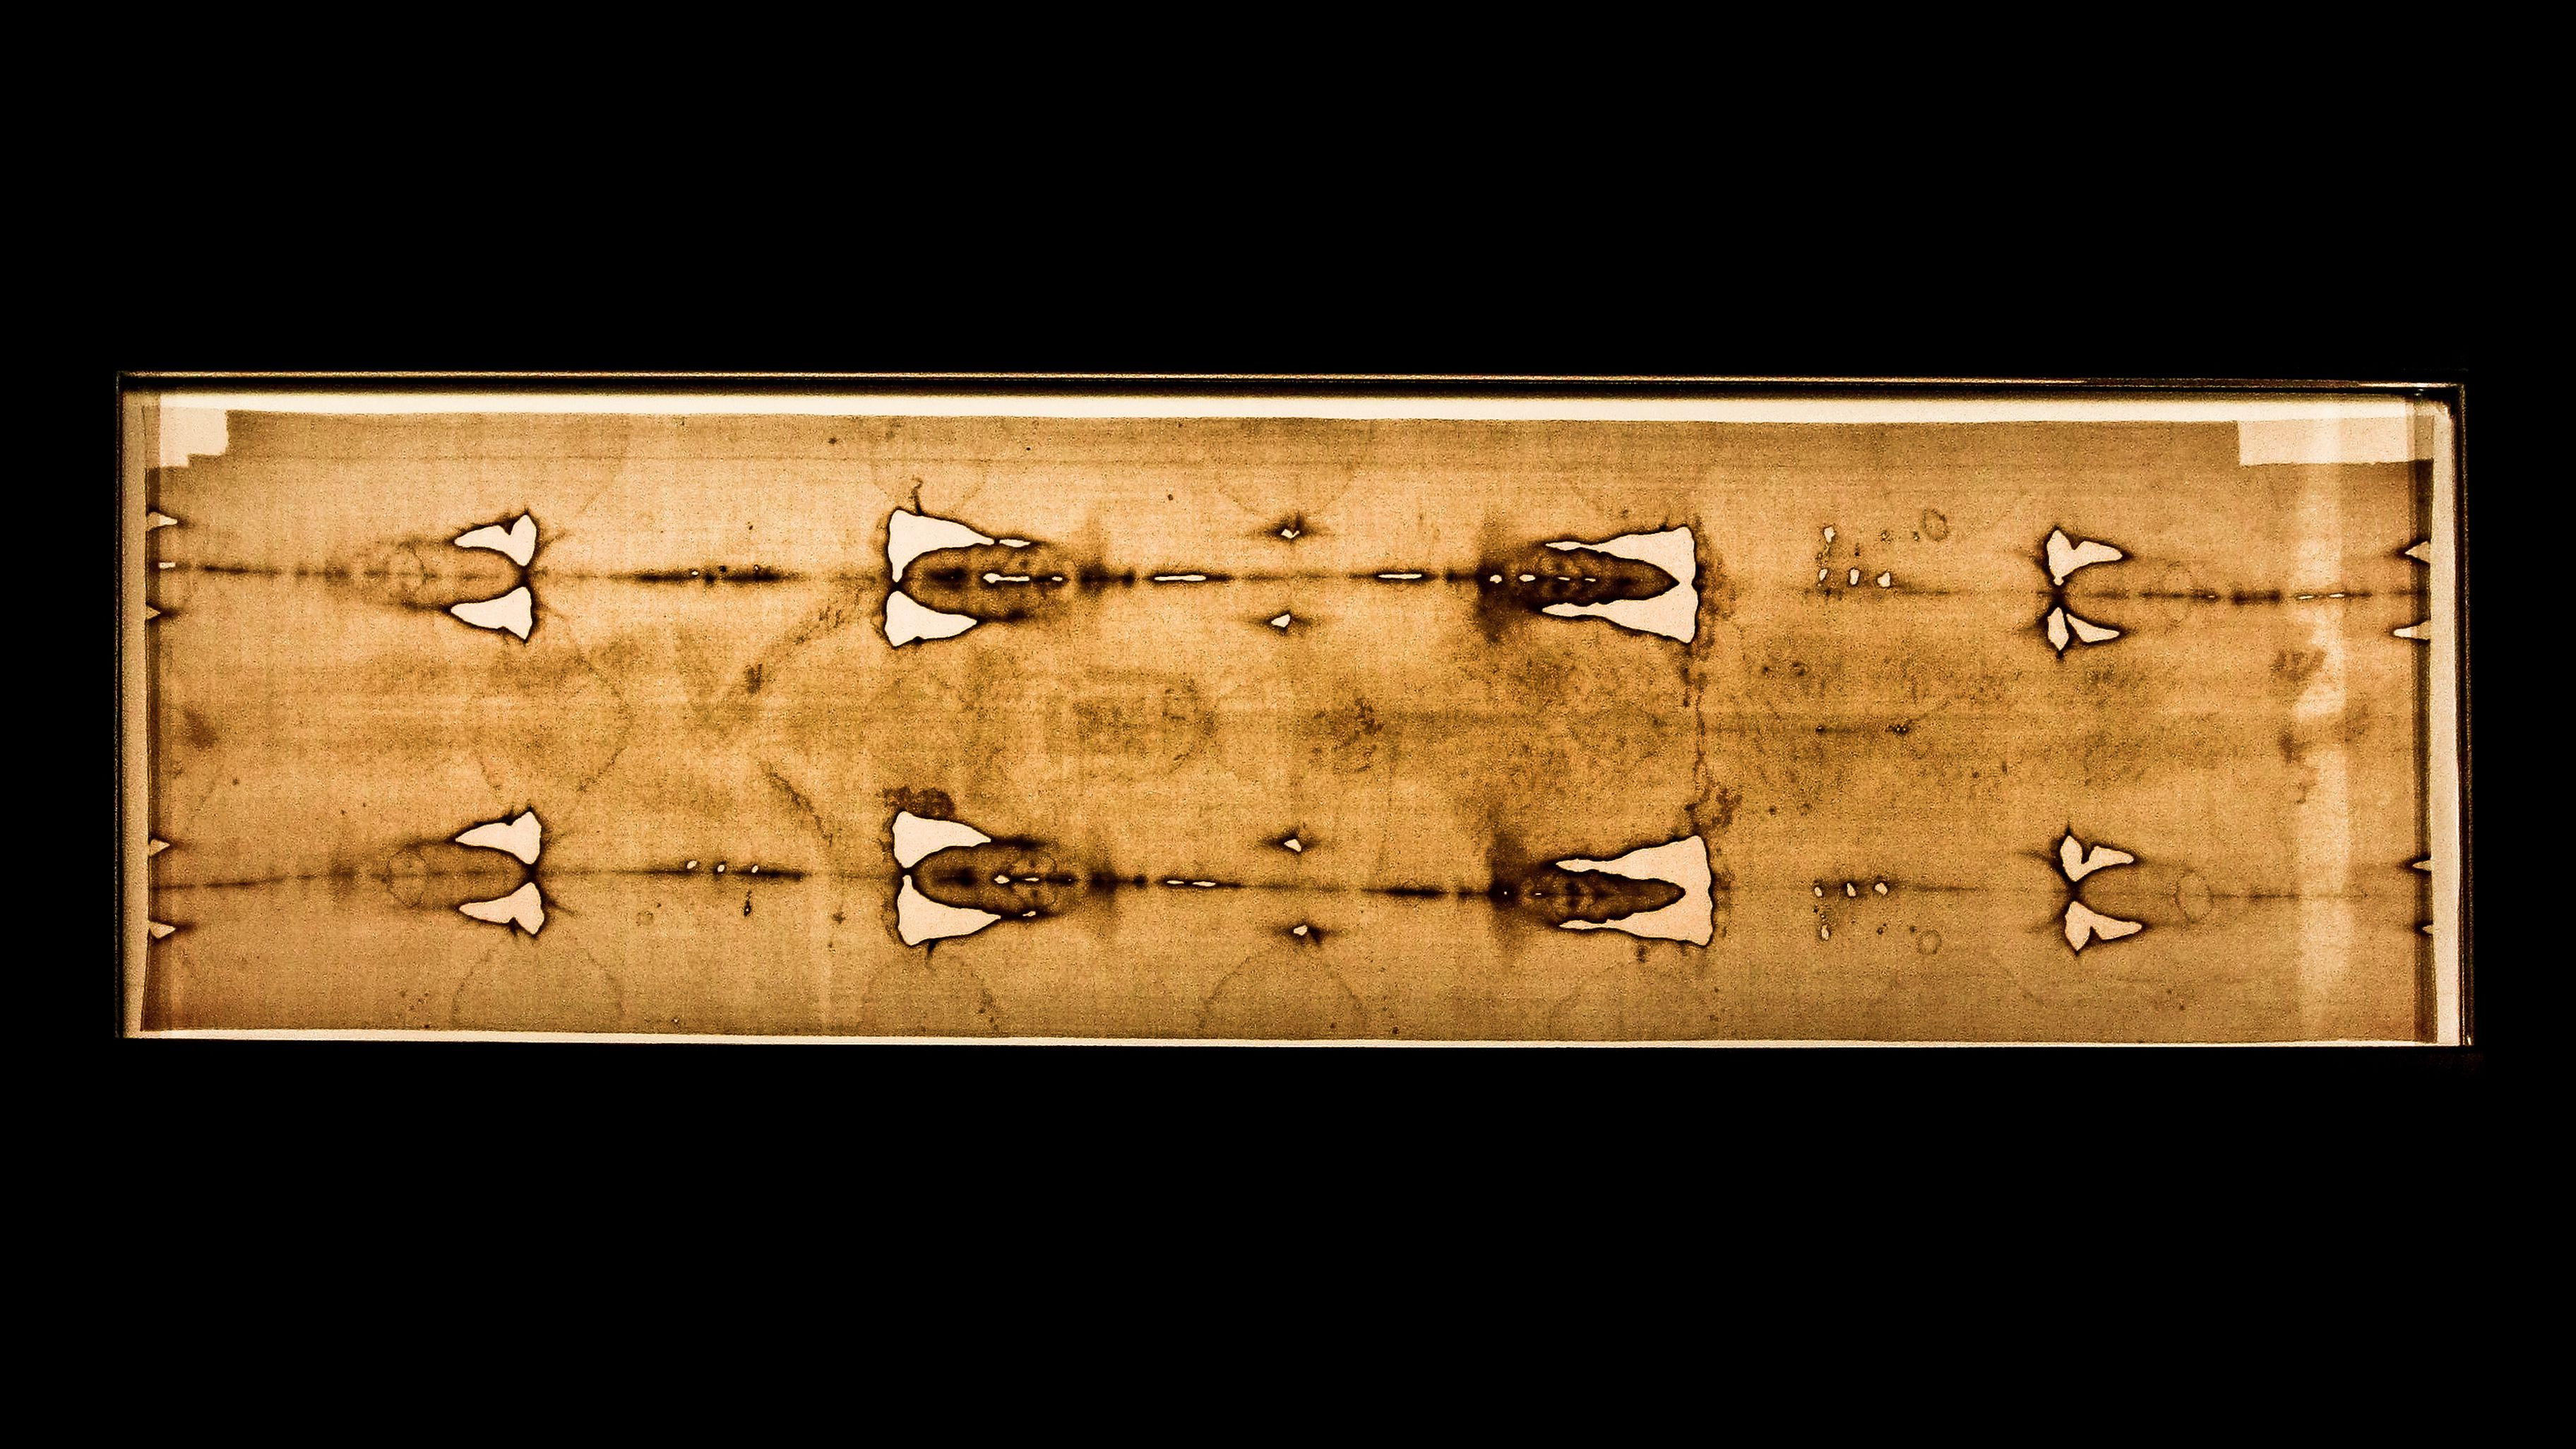 Visiting the Shroud of Turin in Turin (Torino) Italy